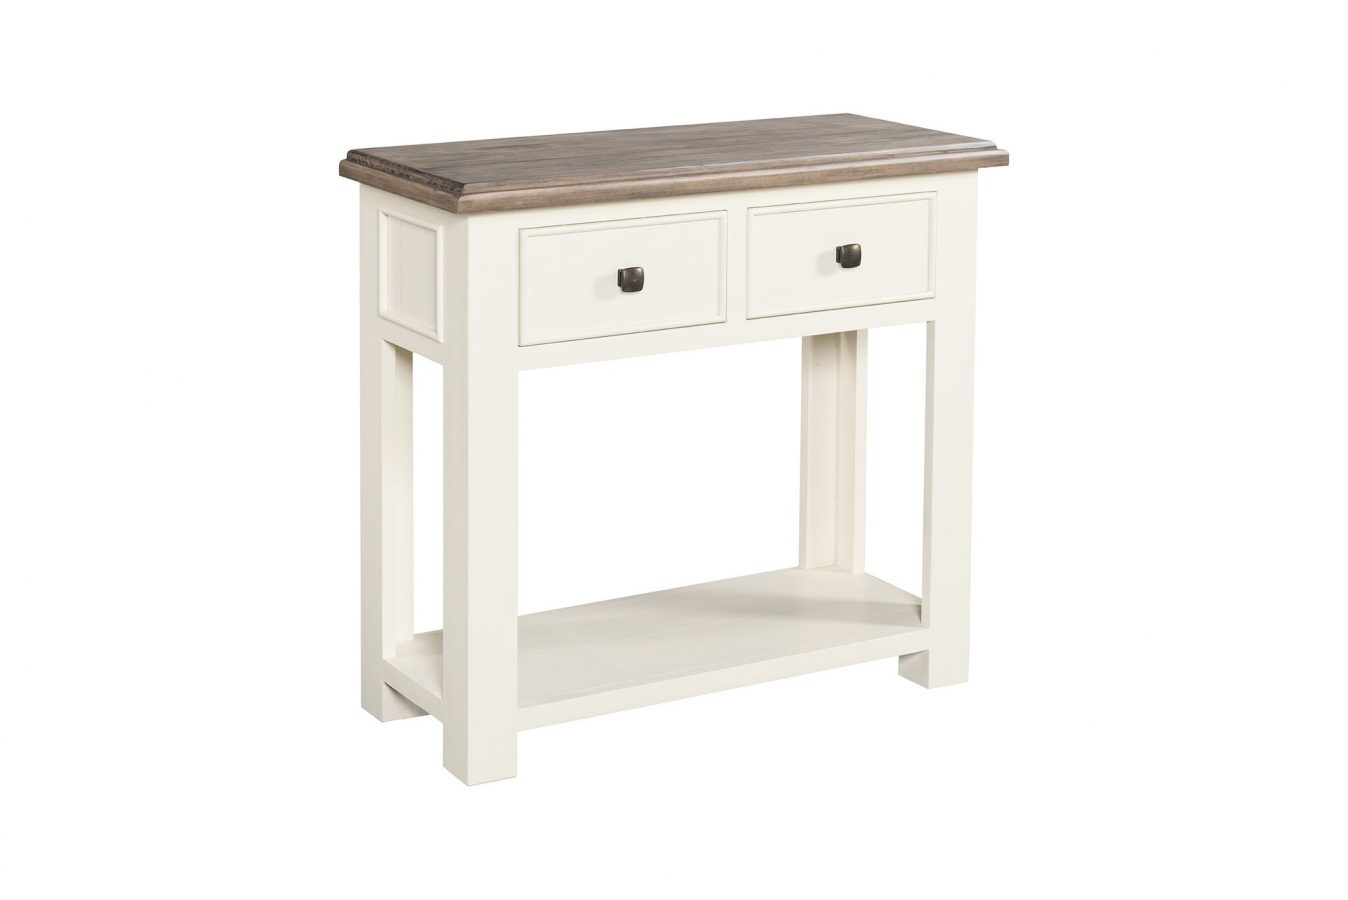 54-01 Console Table with 2 drawers